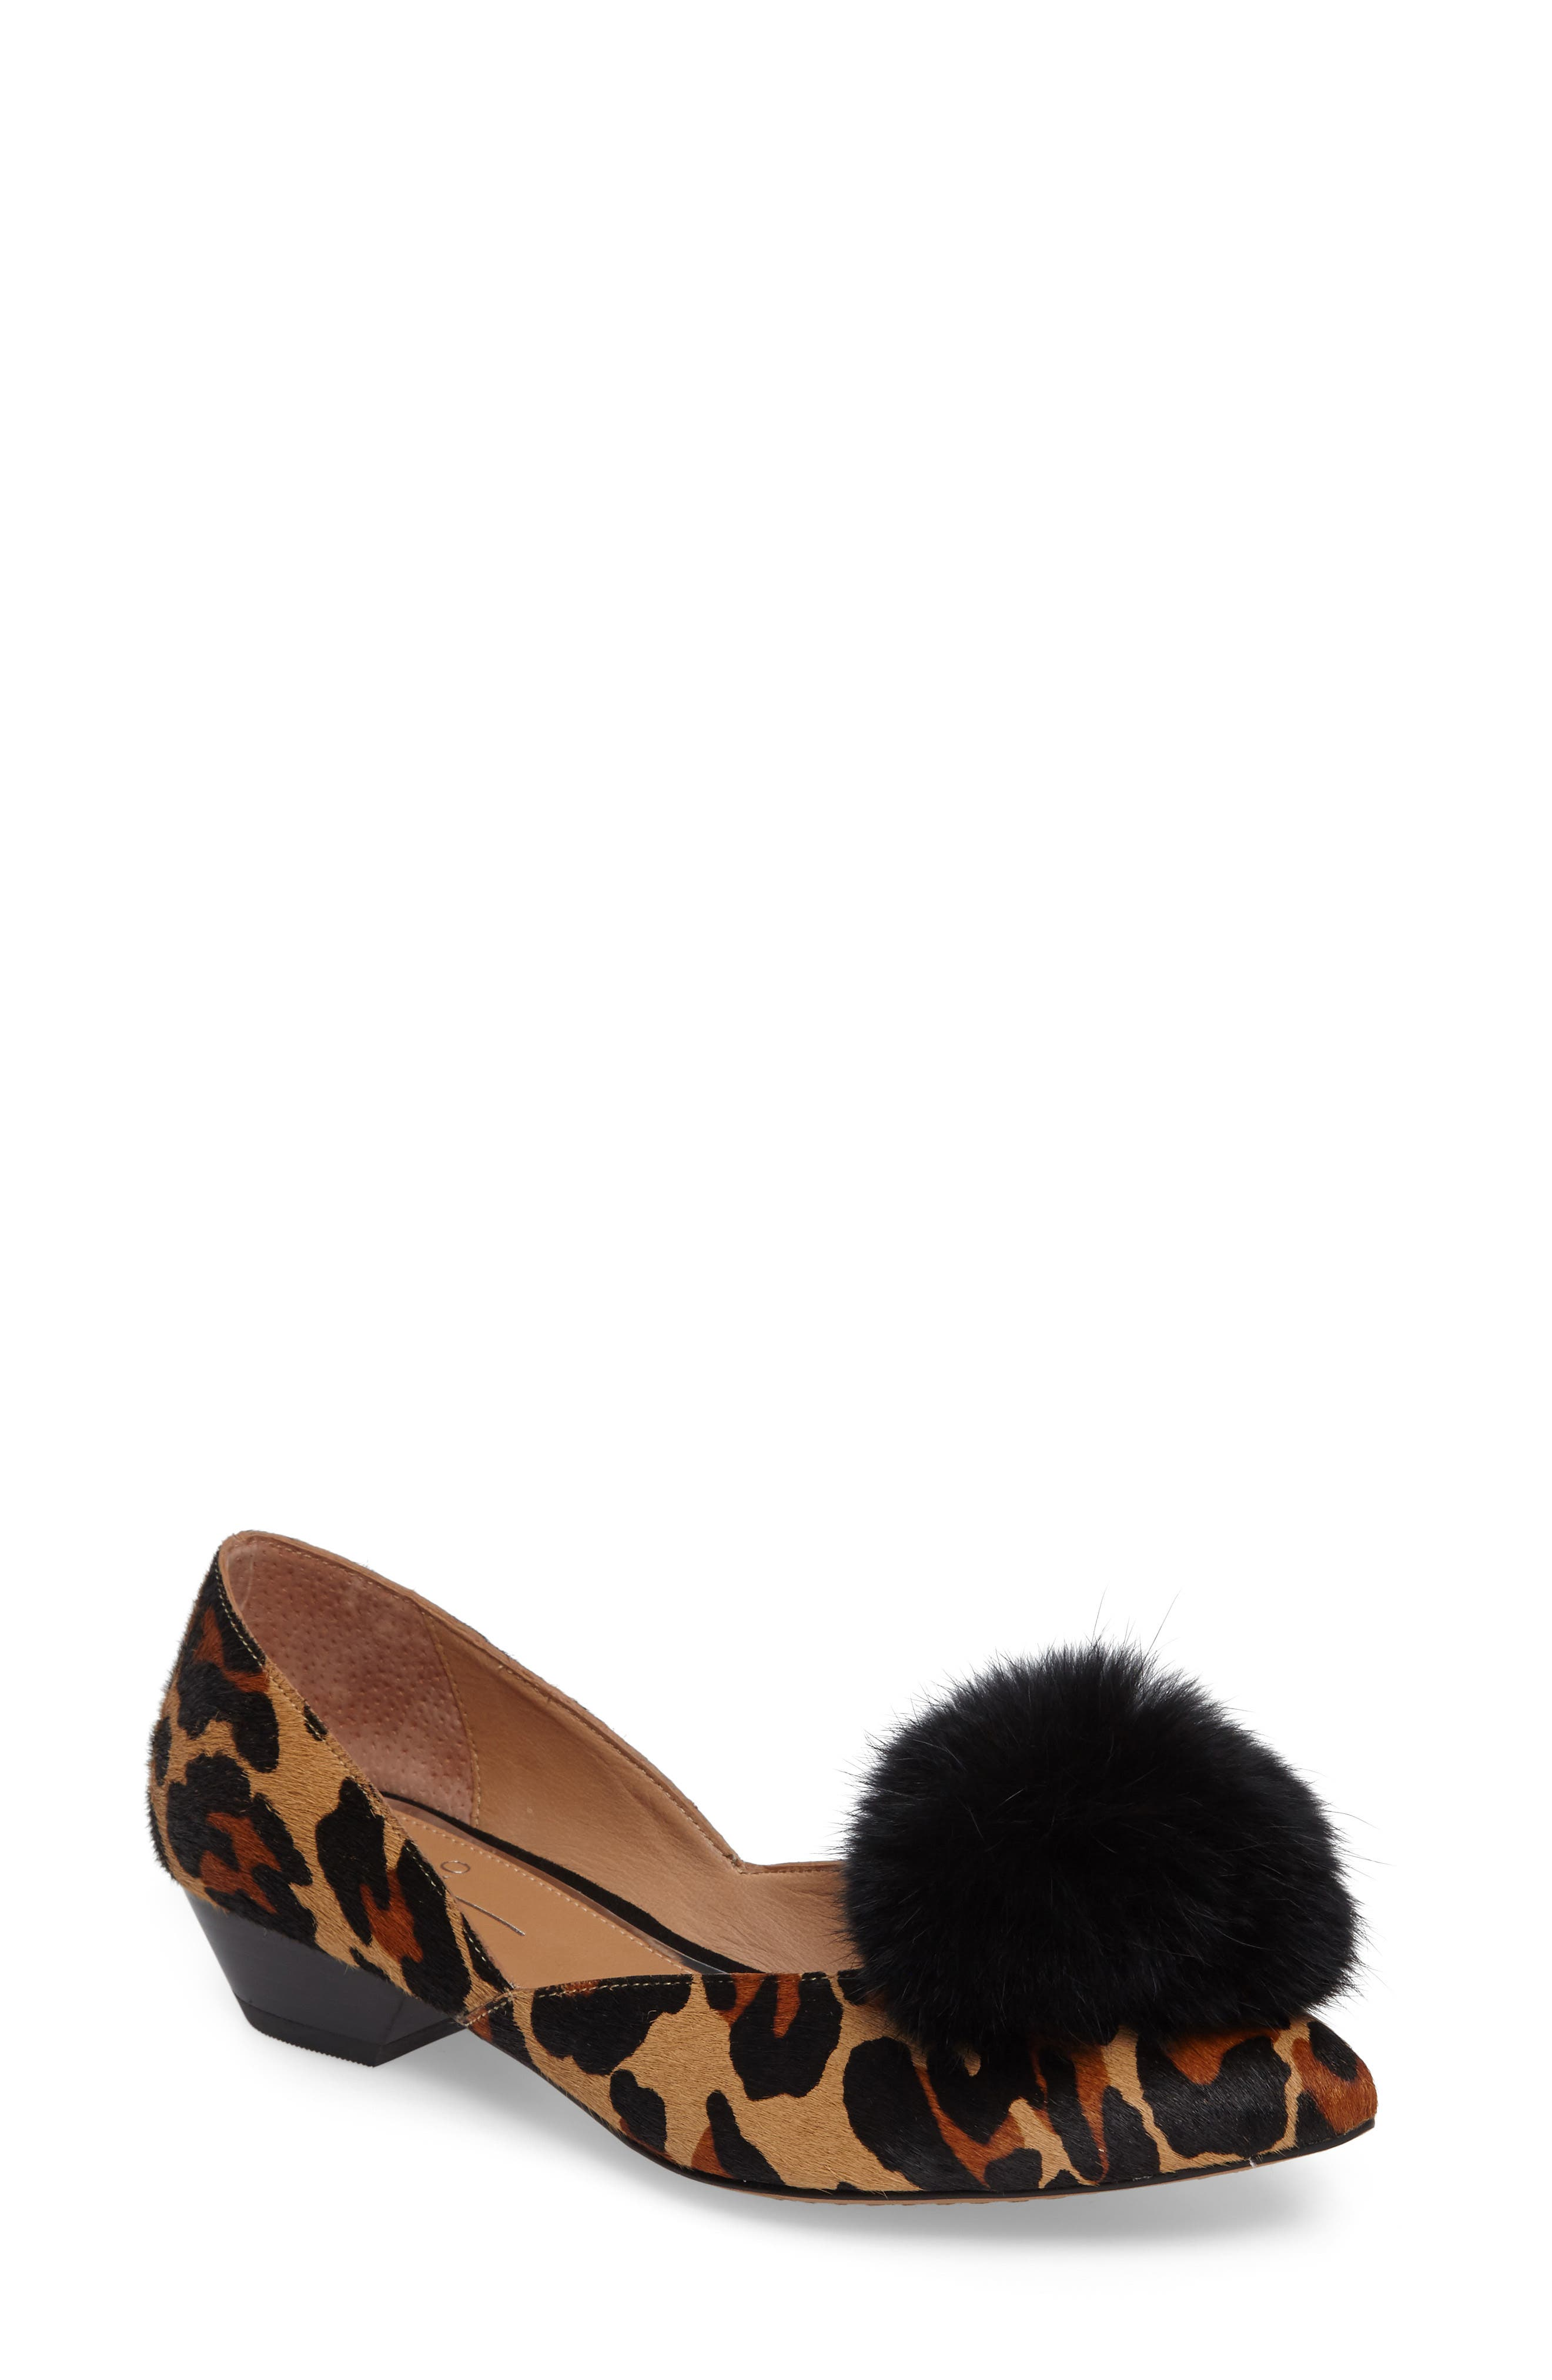 Alternate Image 1 Selected - Linea Paolo Camille II Genuine Calf Hair d'Orsay Pump with Genuine Rabbit Fur Pompom (Women)